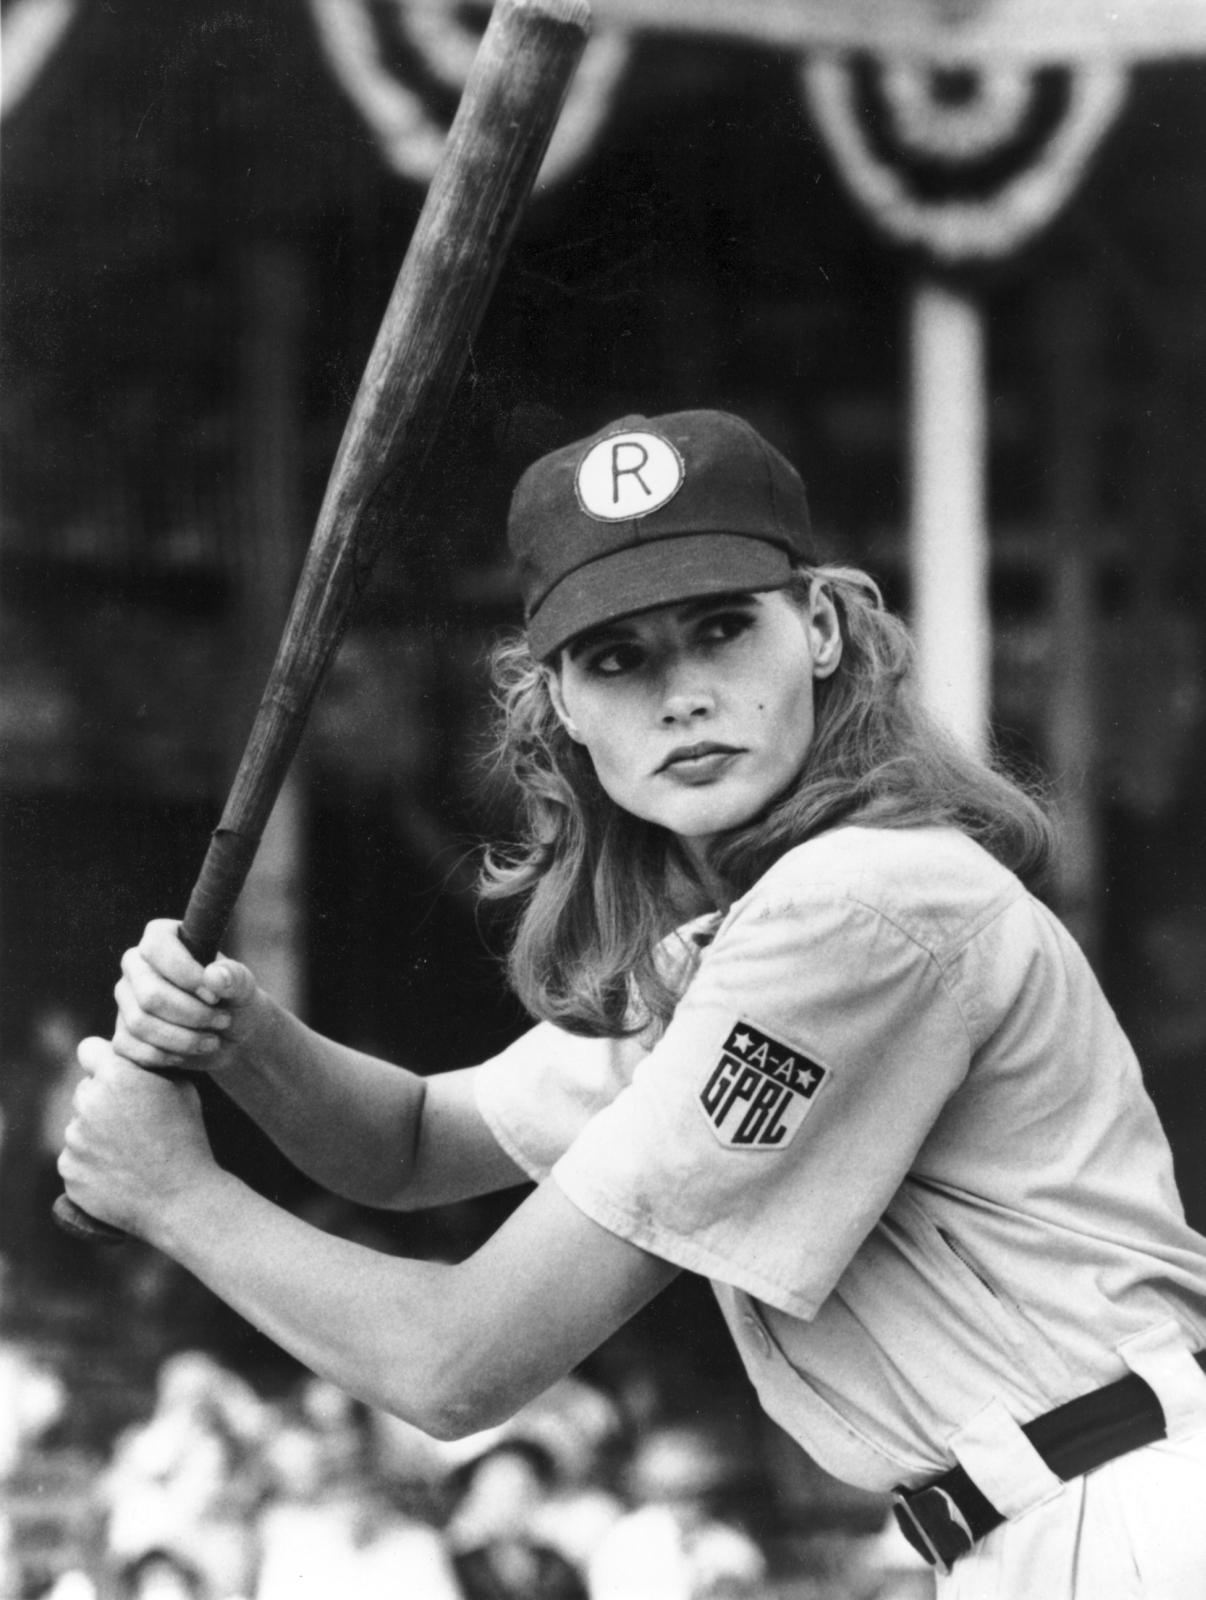 a film analysis of the movie a league of their own directed by penny marshall You know there's no crying in baseball, but here are 25 things you might not know about the 1992 classic, a league of their own 1 the movie inspired a.